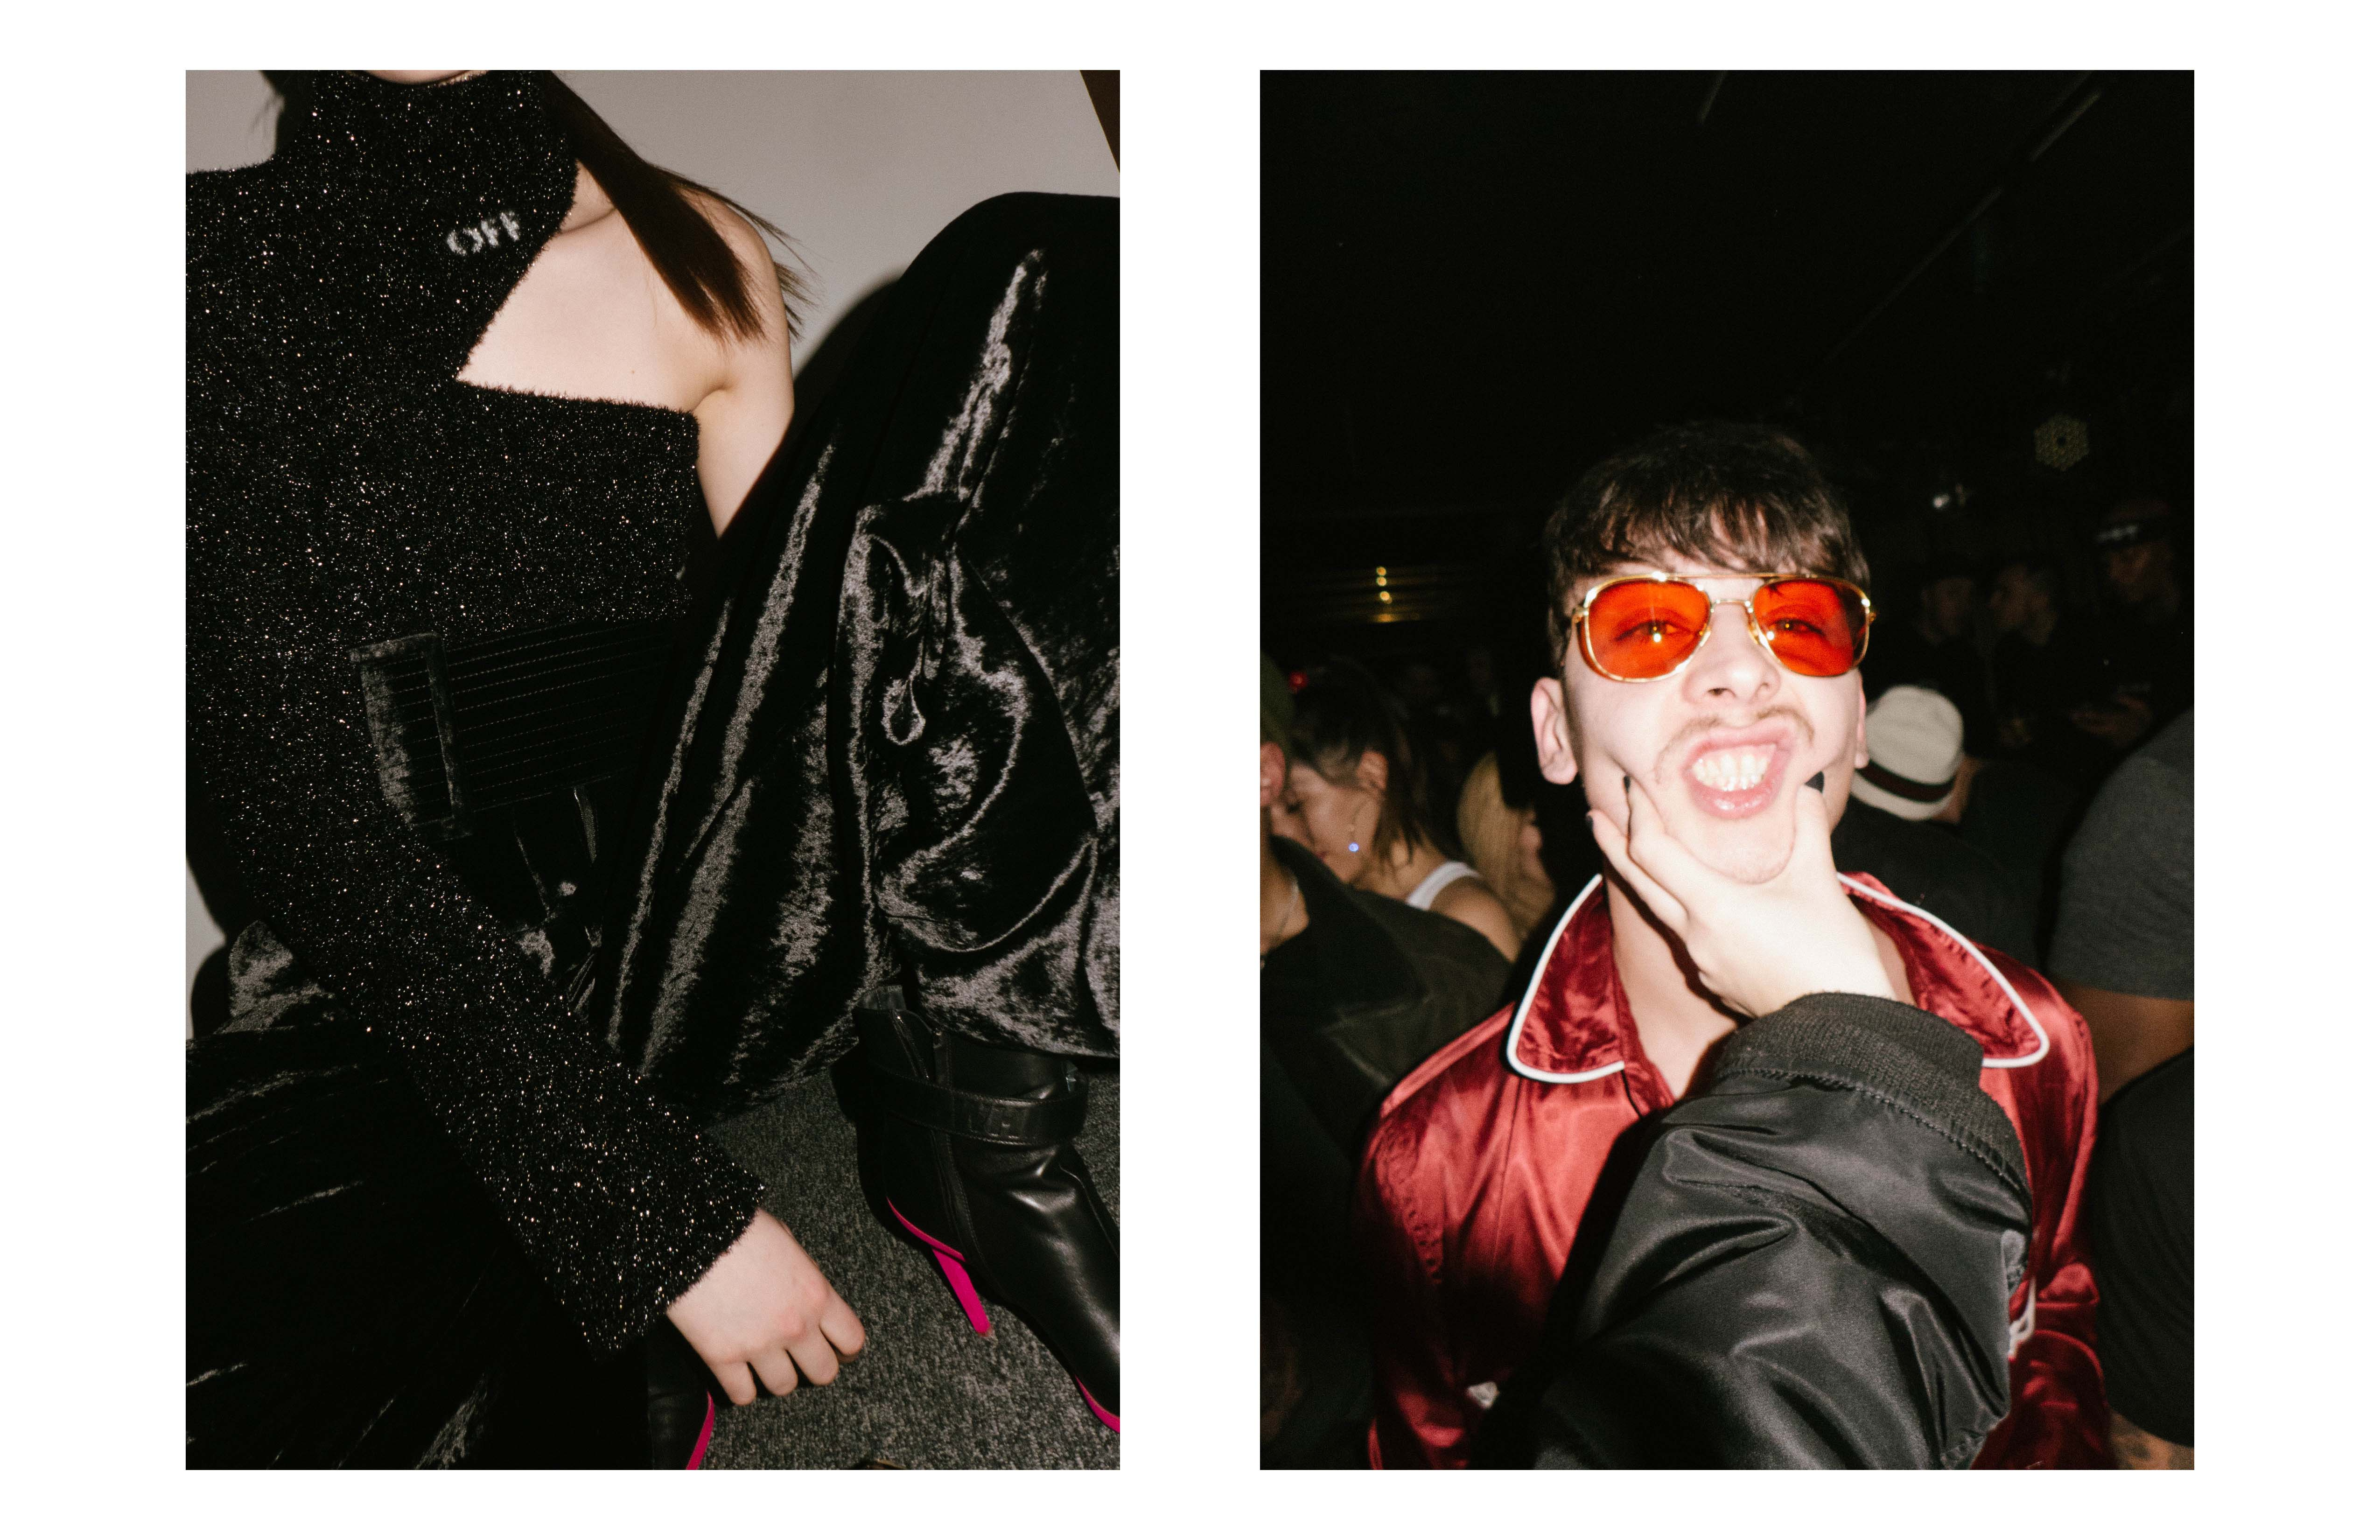 From left to right : Off-White show backstage, Mago Dovjenko